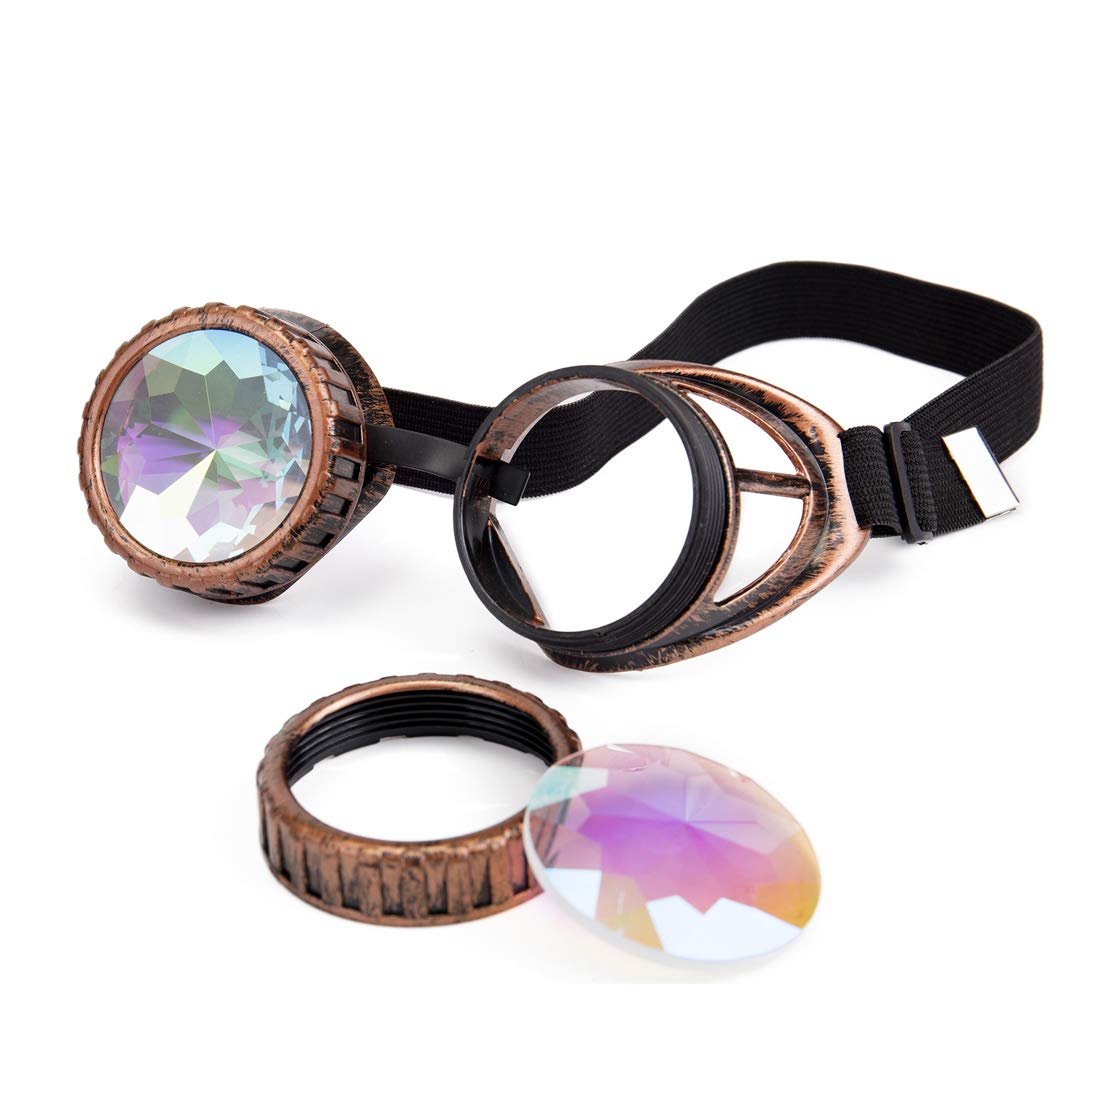 AFUT ABS Kaleidoscope Rainbow Lens Glasses Costume Photo Props Vintage Steampunk Goggles Glasses Gothic Cosplay Goggle AFUT@MG031-MG032-BB2